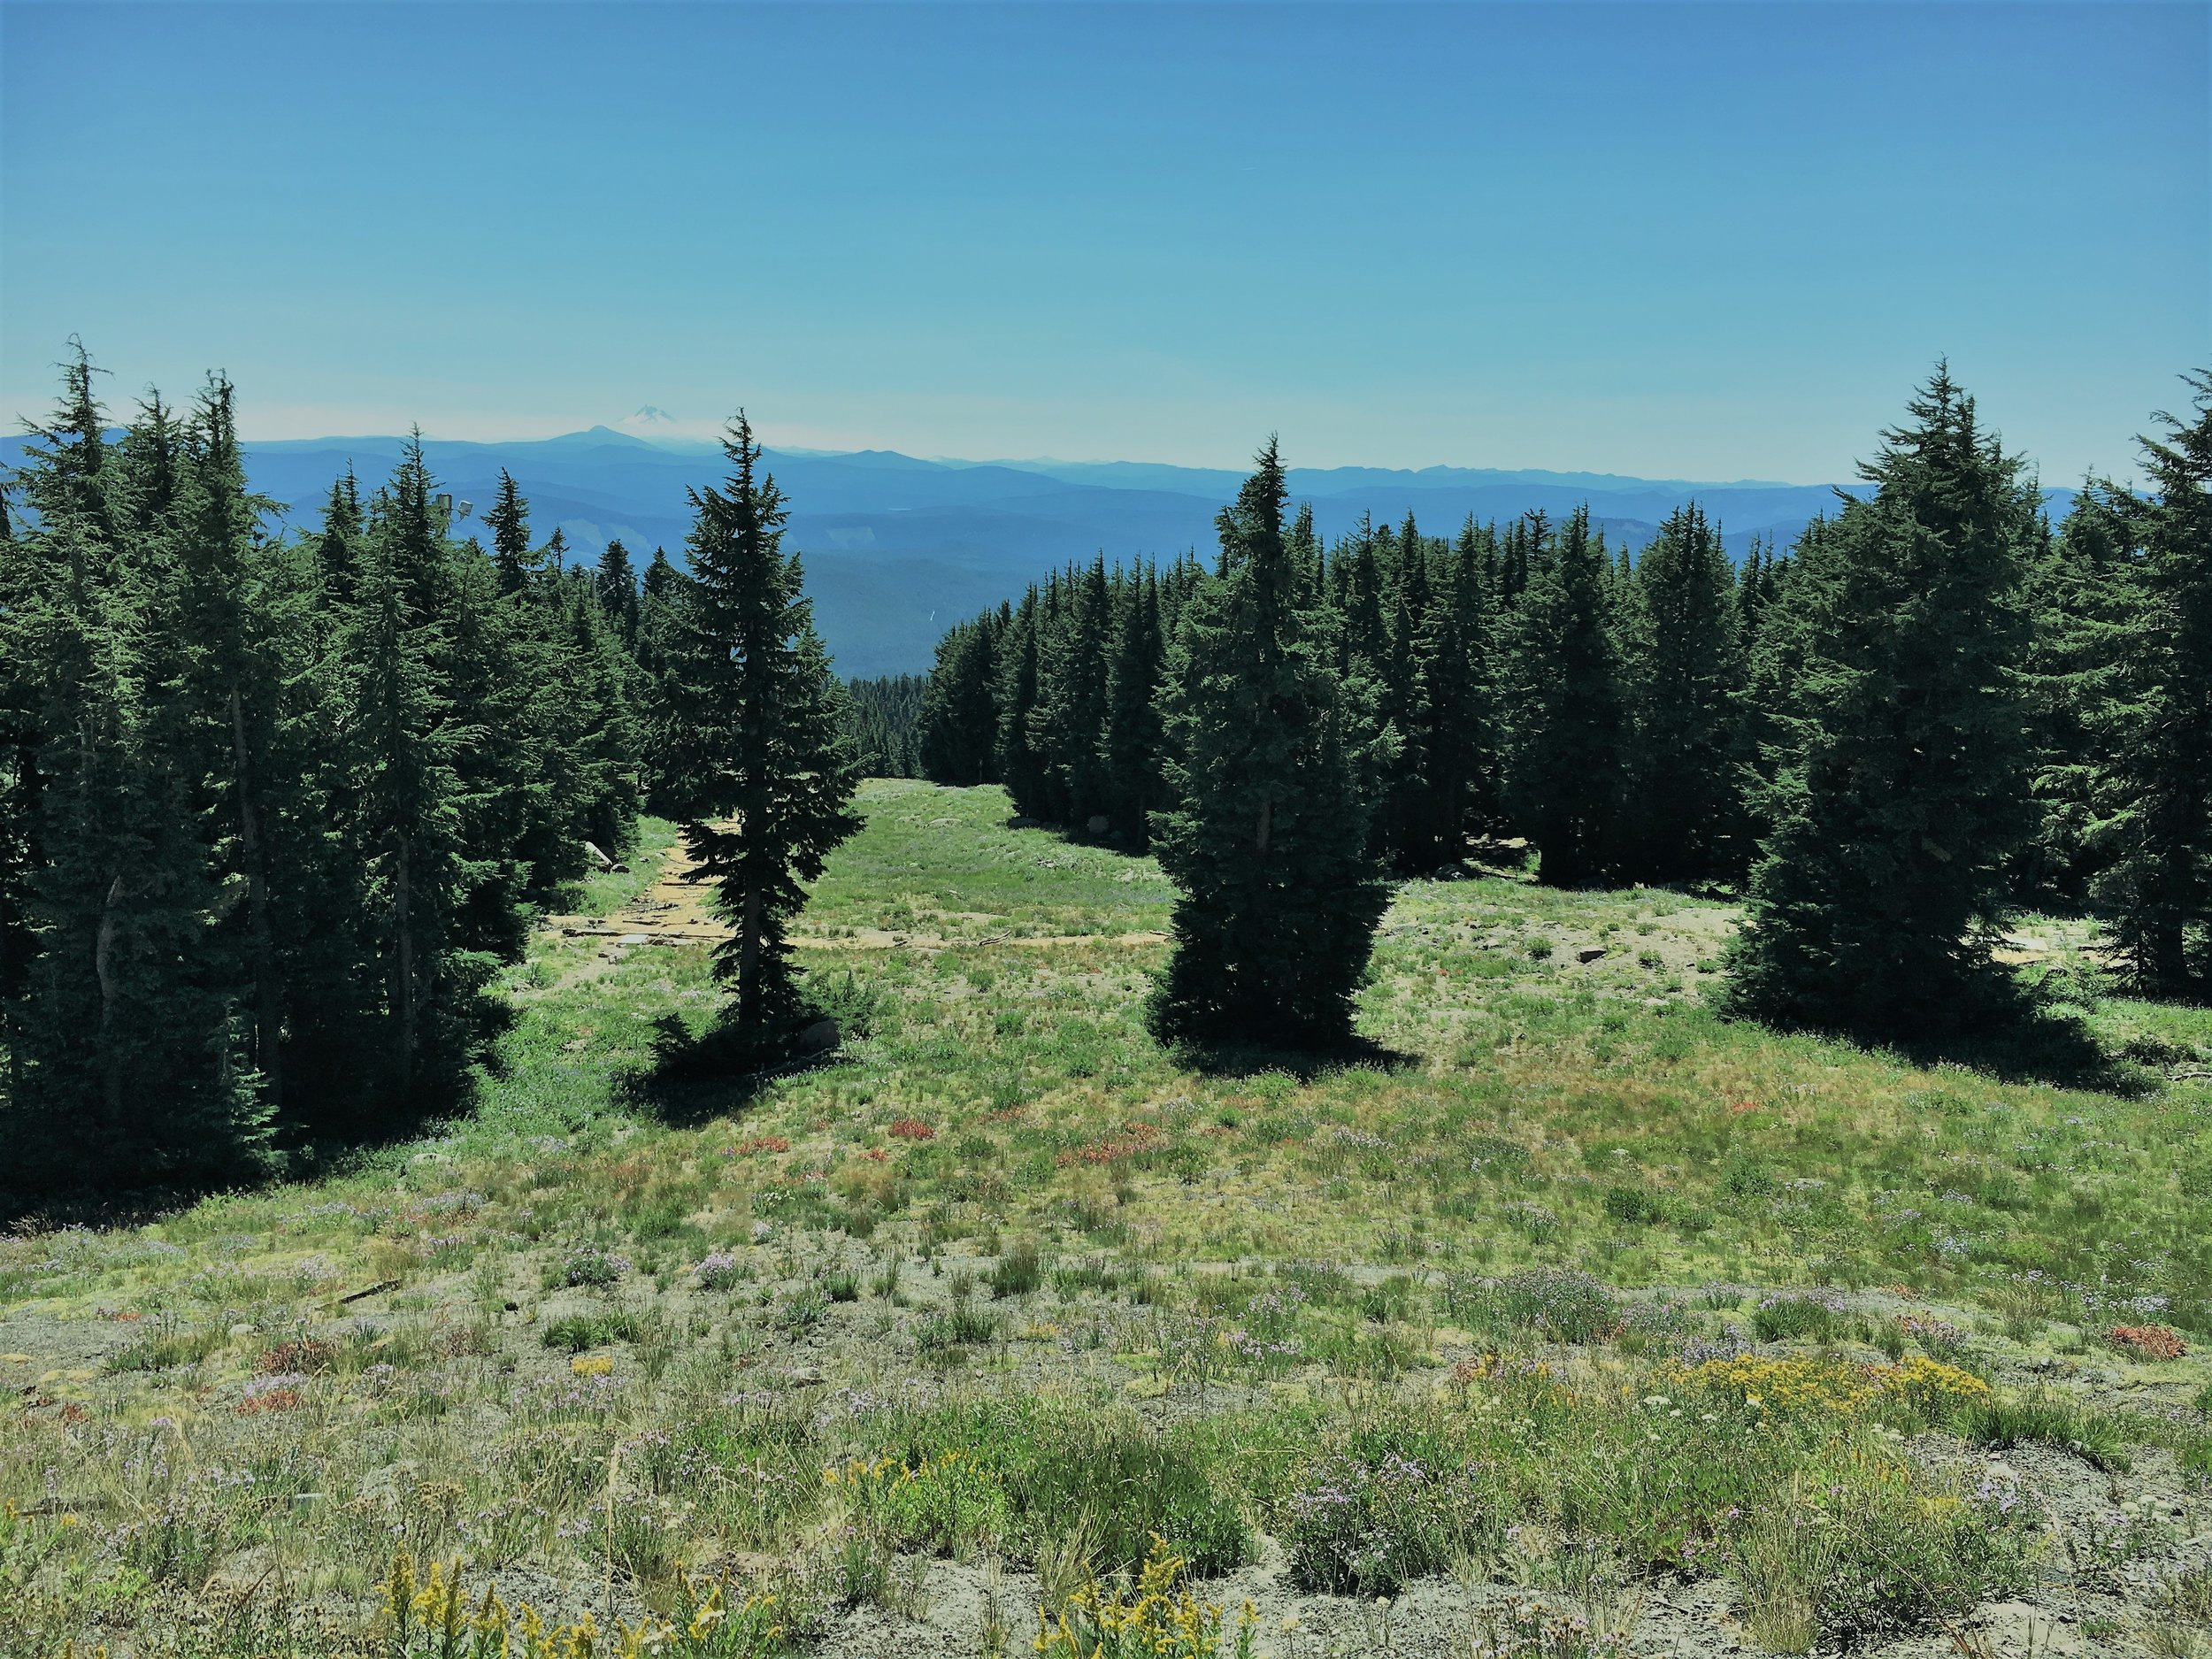 The View from Timberline Lodge Entrance